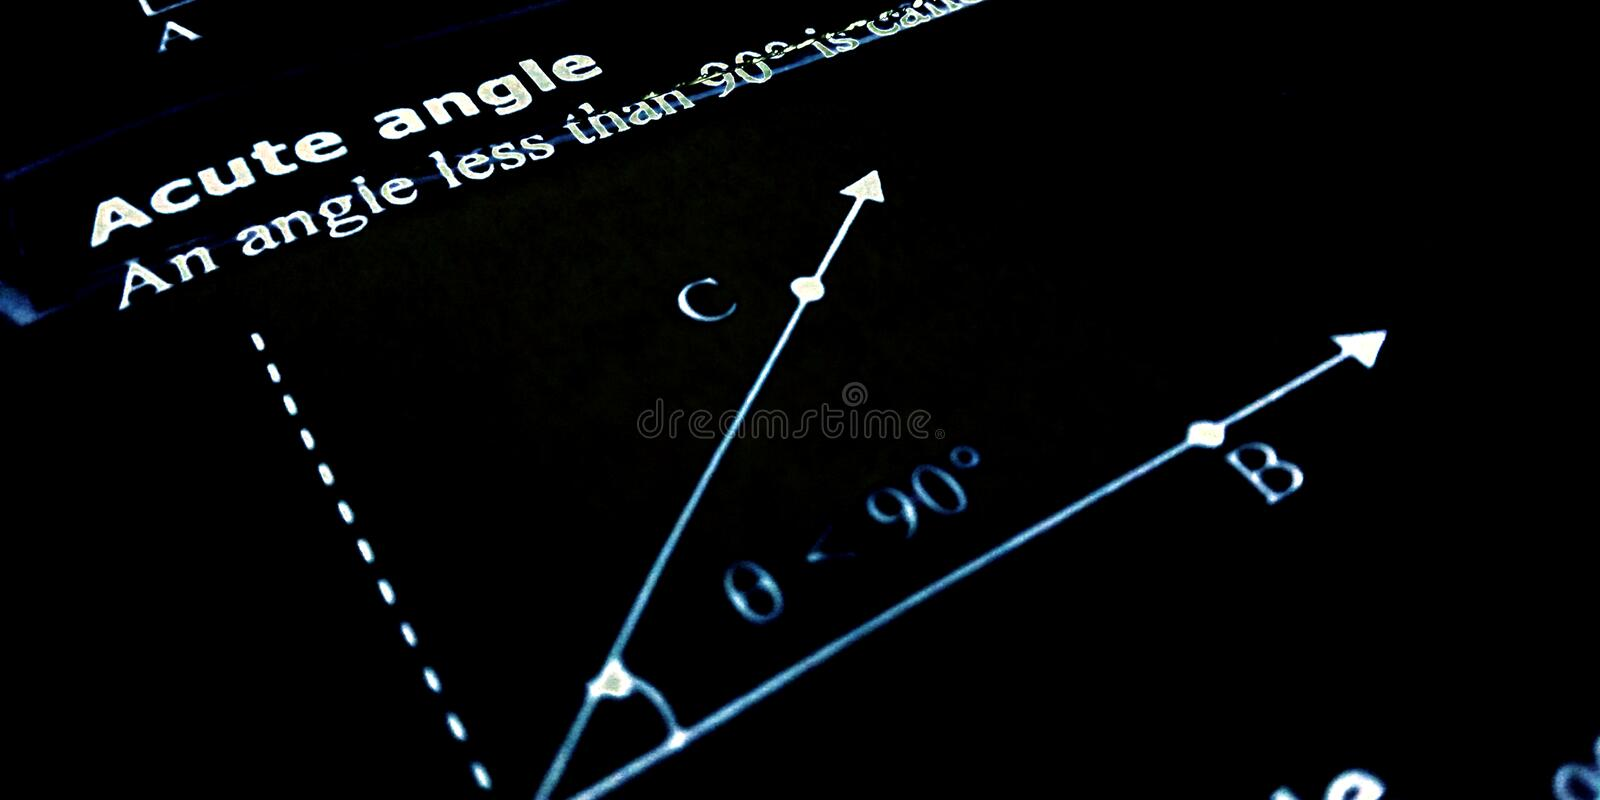 Acute angle presentation on black background with diagram stock image